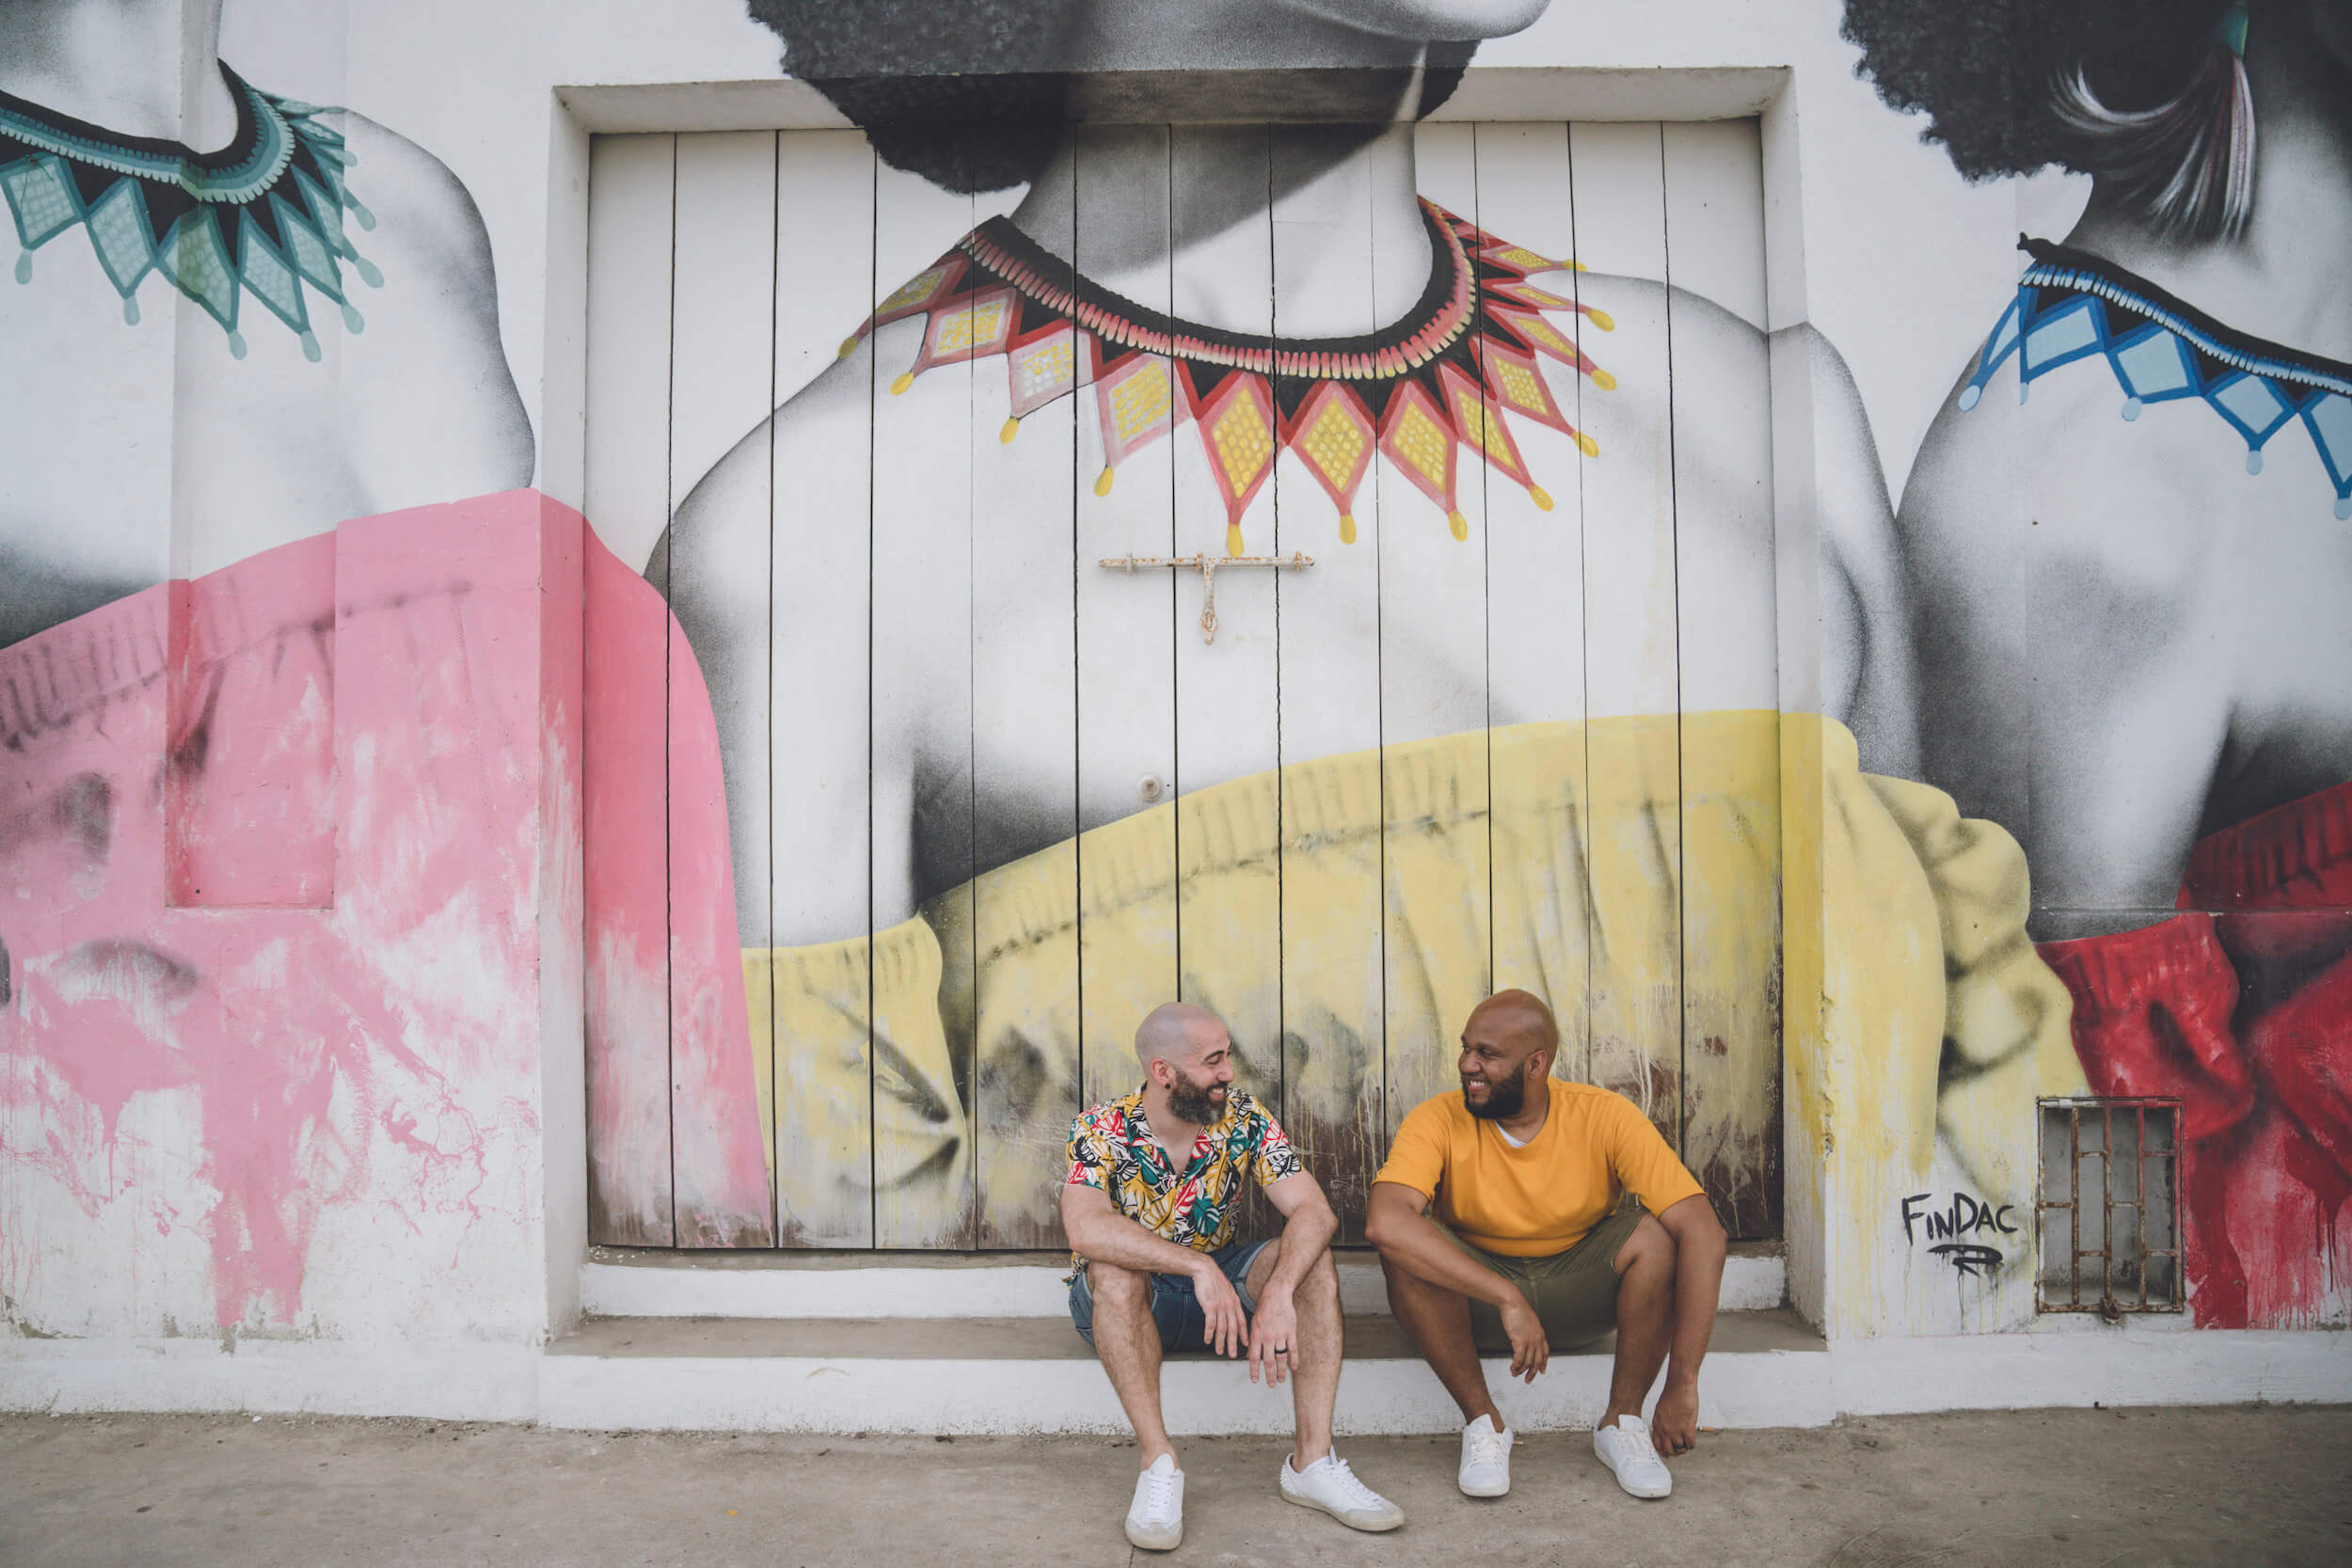 Two men sit on the sidewalk and smile at each other in Cartagena, Colombia.